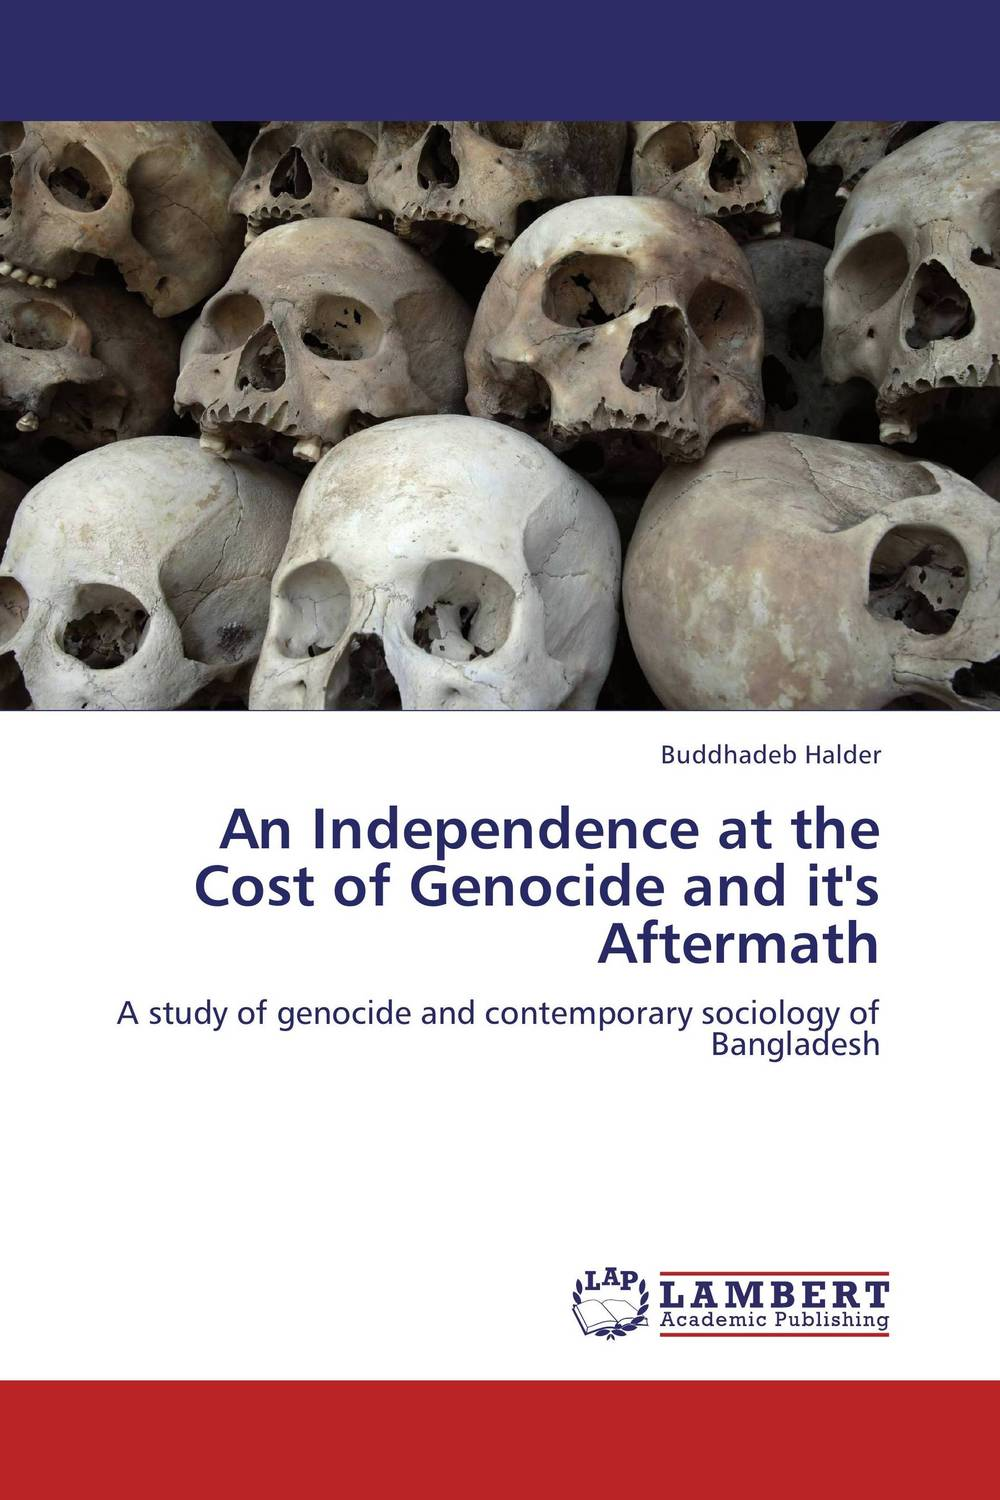 An Independence at the Cost of Genocide and it's  Aftermath war photography images of armed conflict and its aftermath